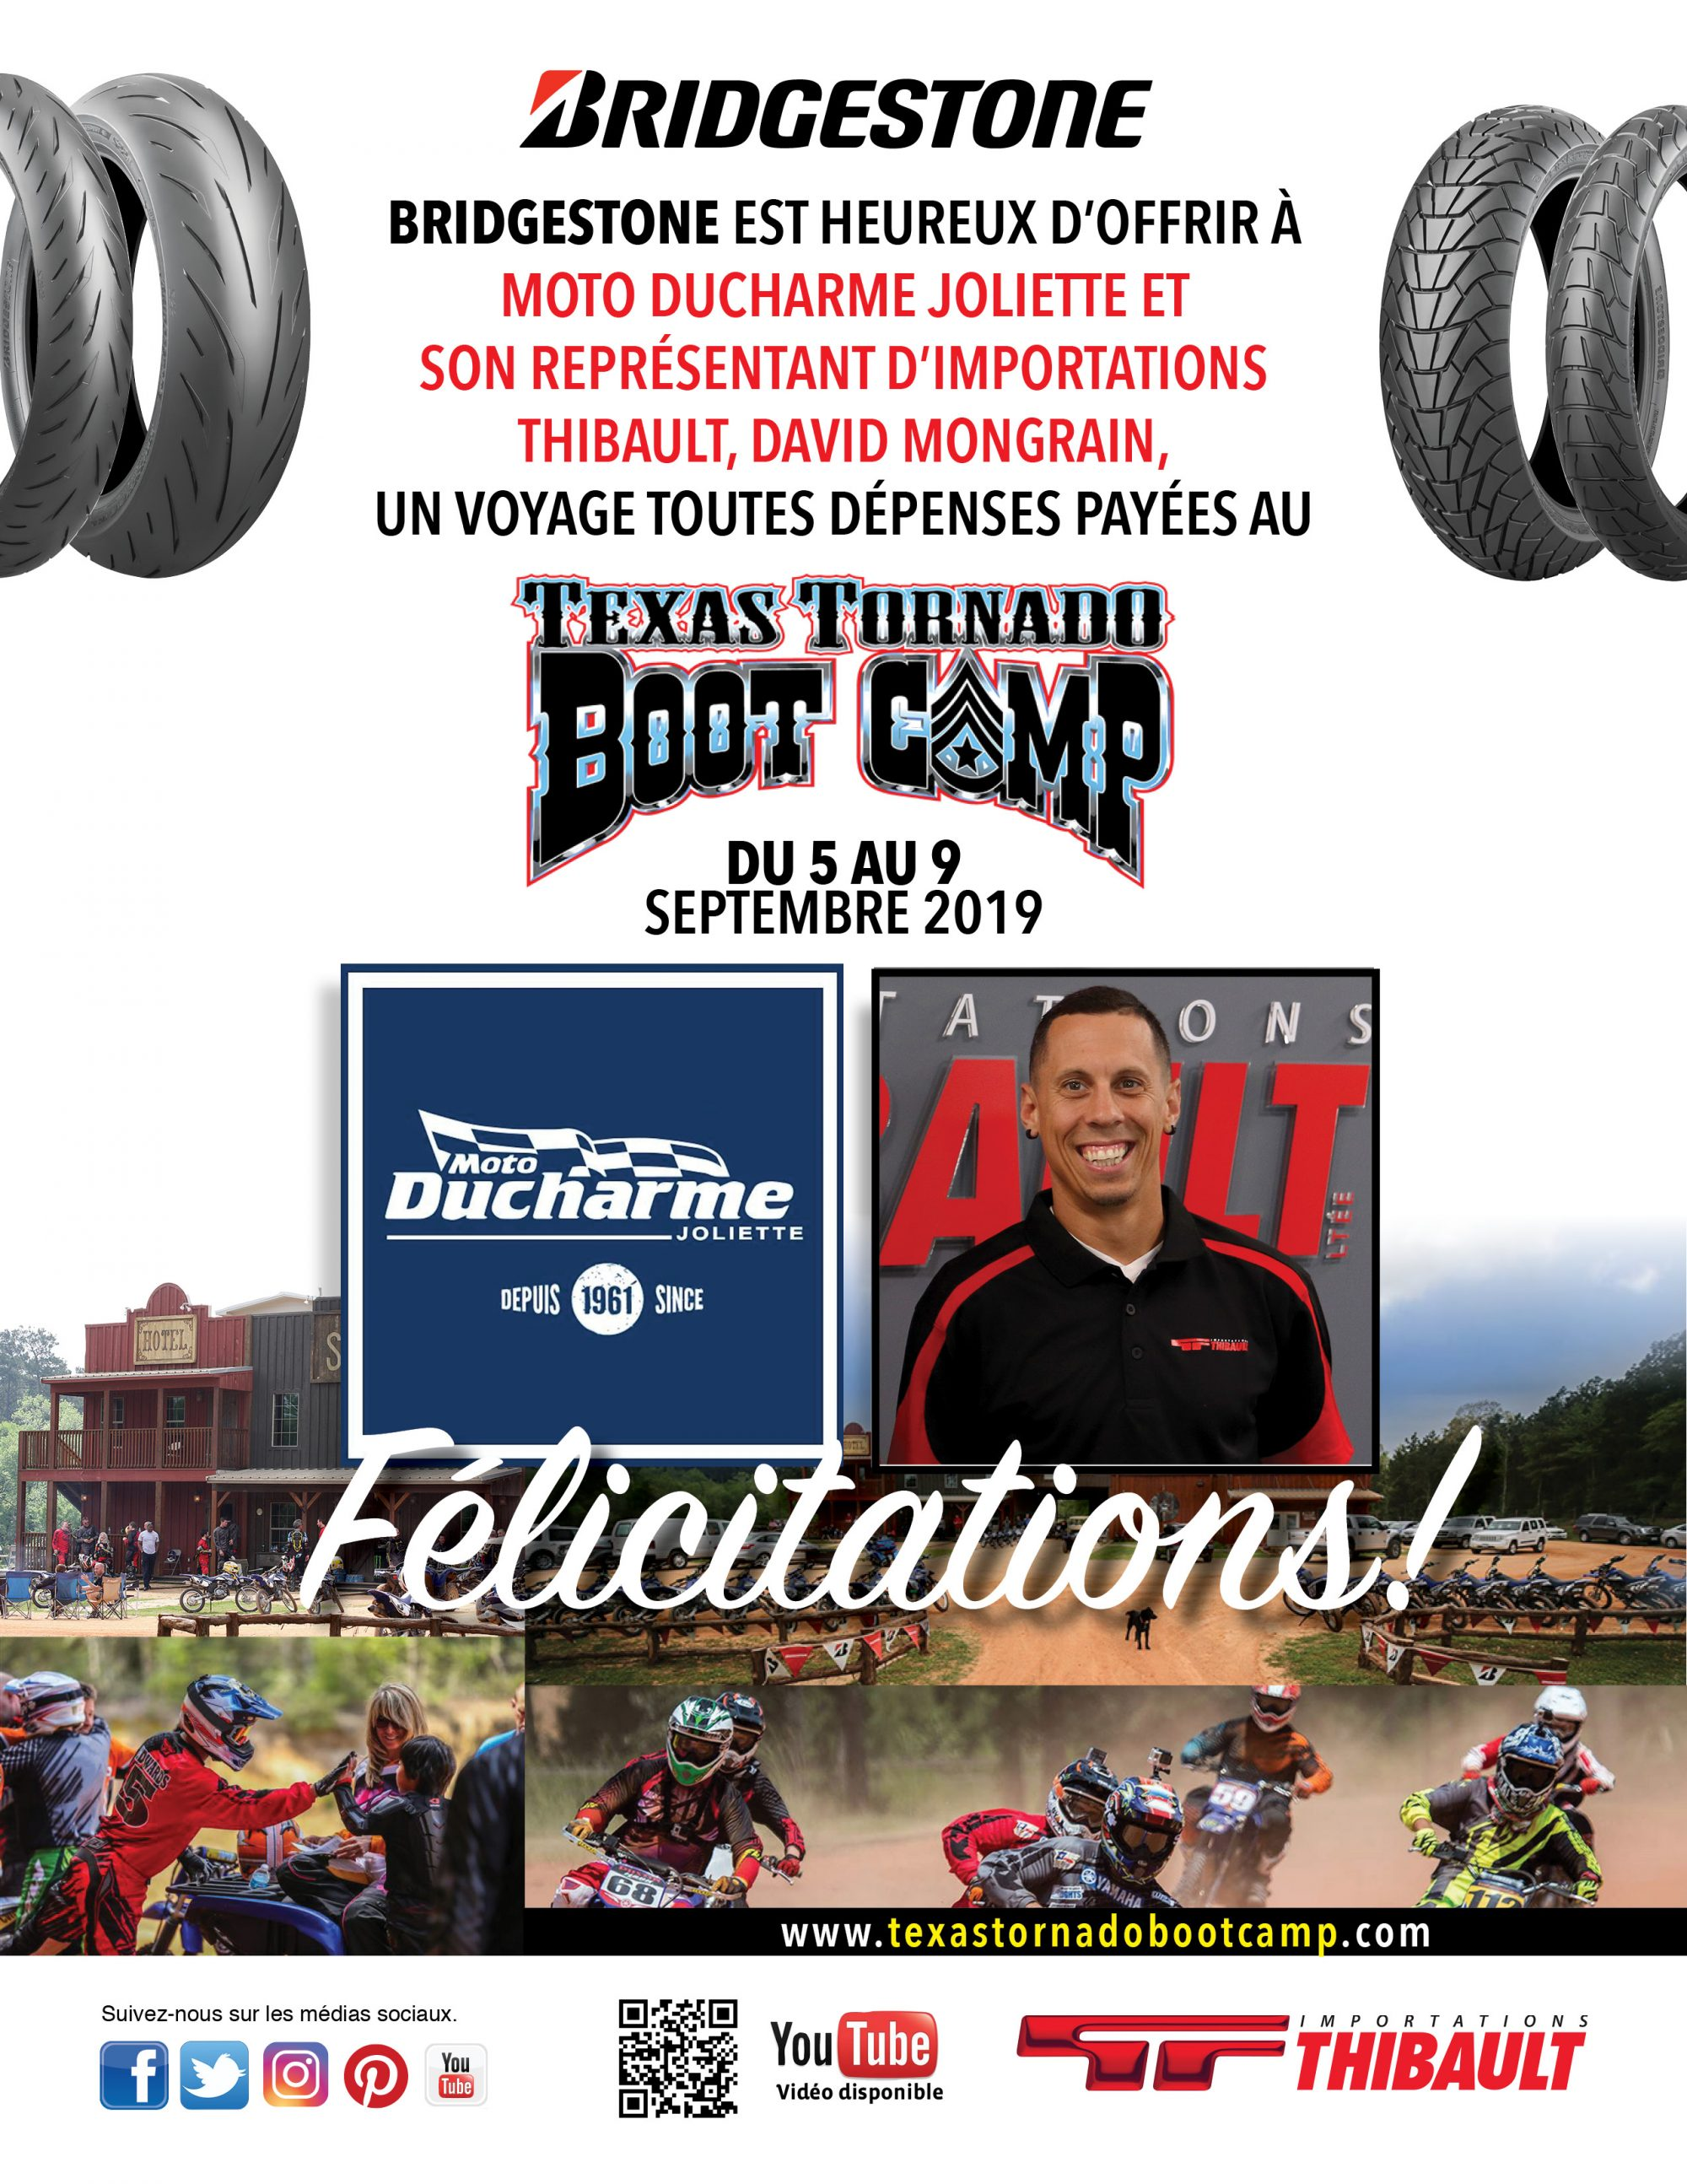 BRIDGESTONE / Texas Tornado Boot Camp Contest Winner